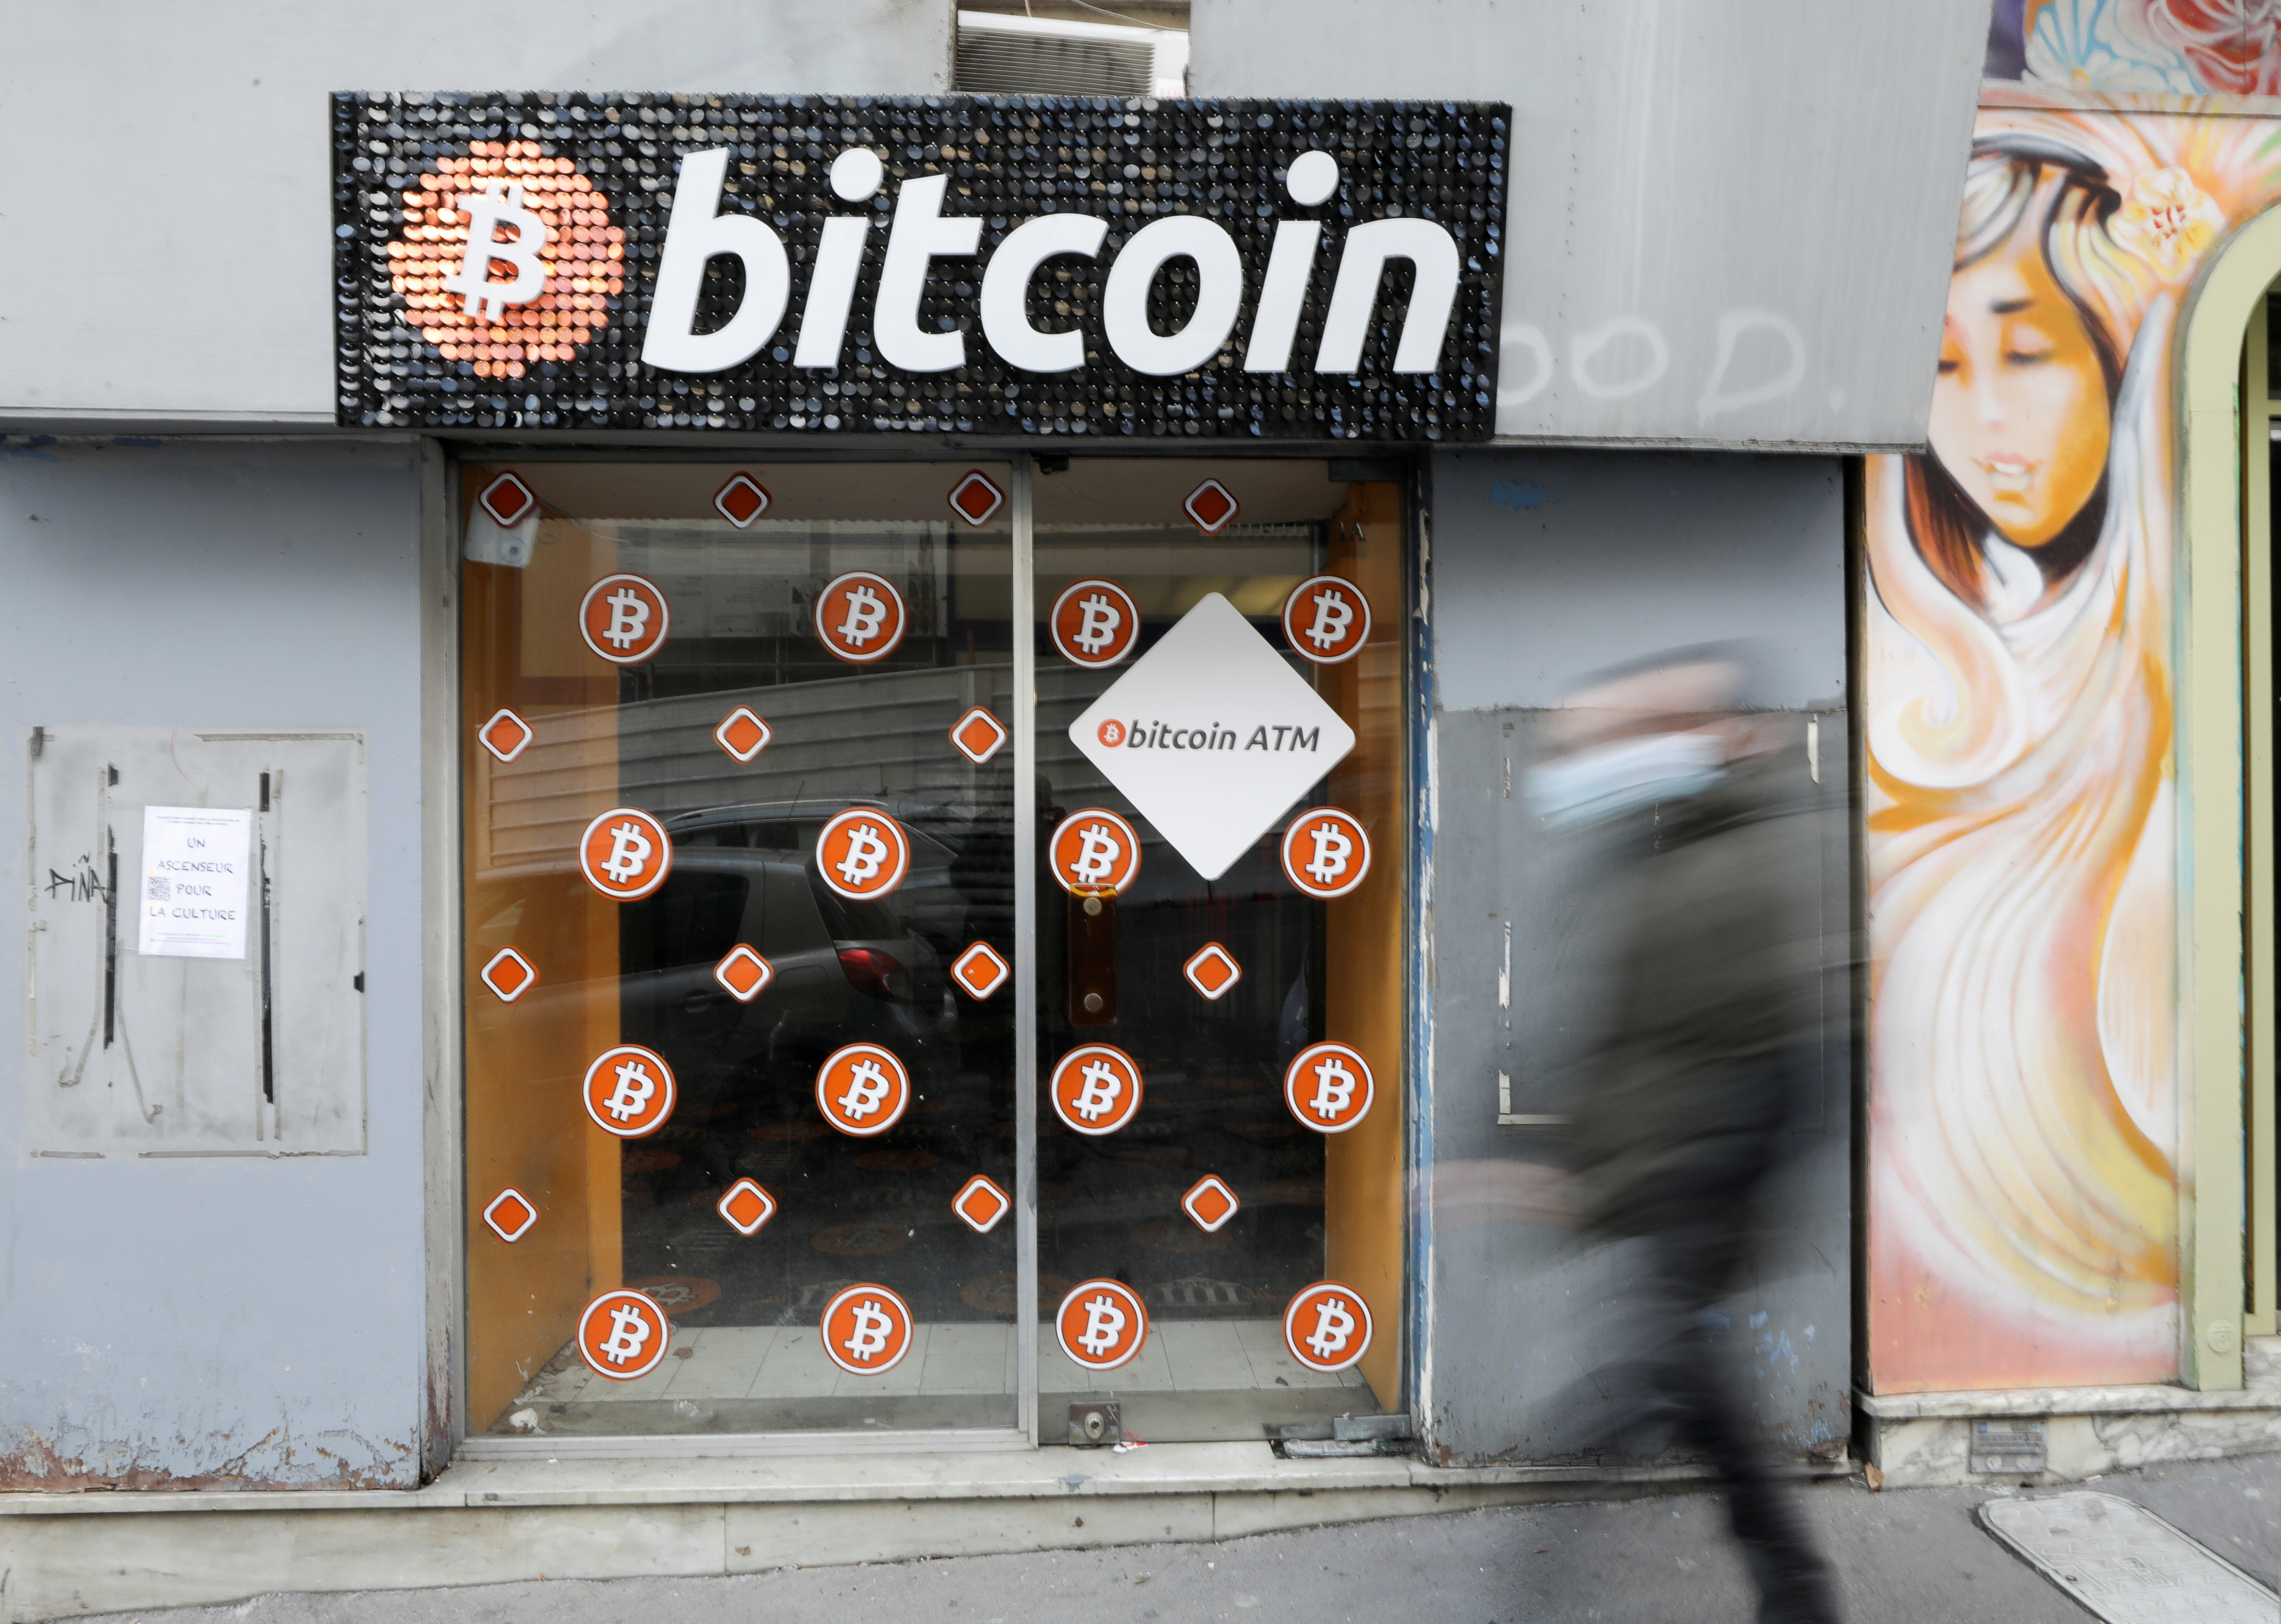 A man wearing a face mask walks past a Bitcoin digital currency ATM shop in Marseille, France, February 7, 2021. REUTERS/Eric Gaillard